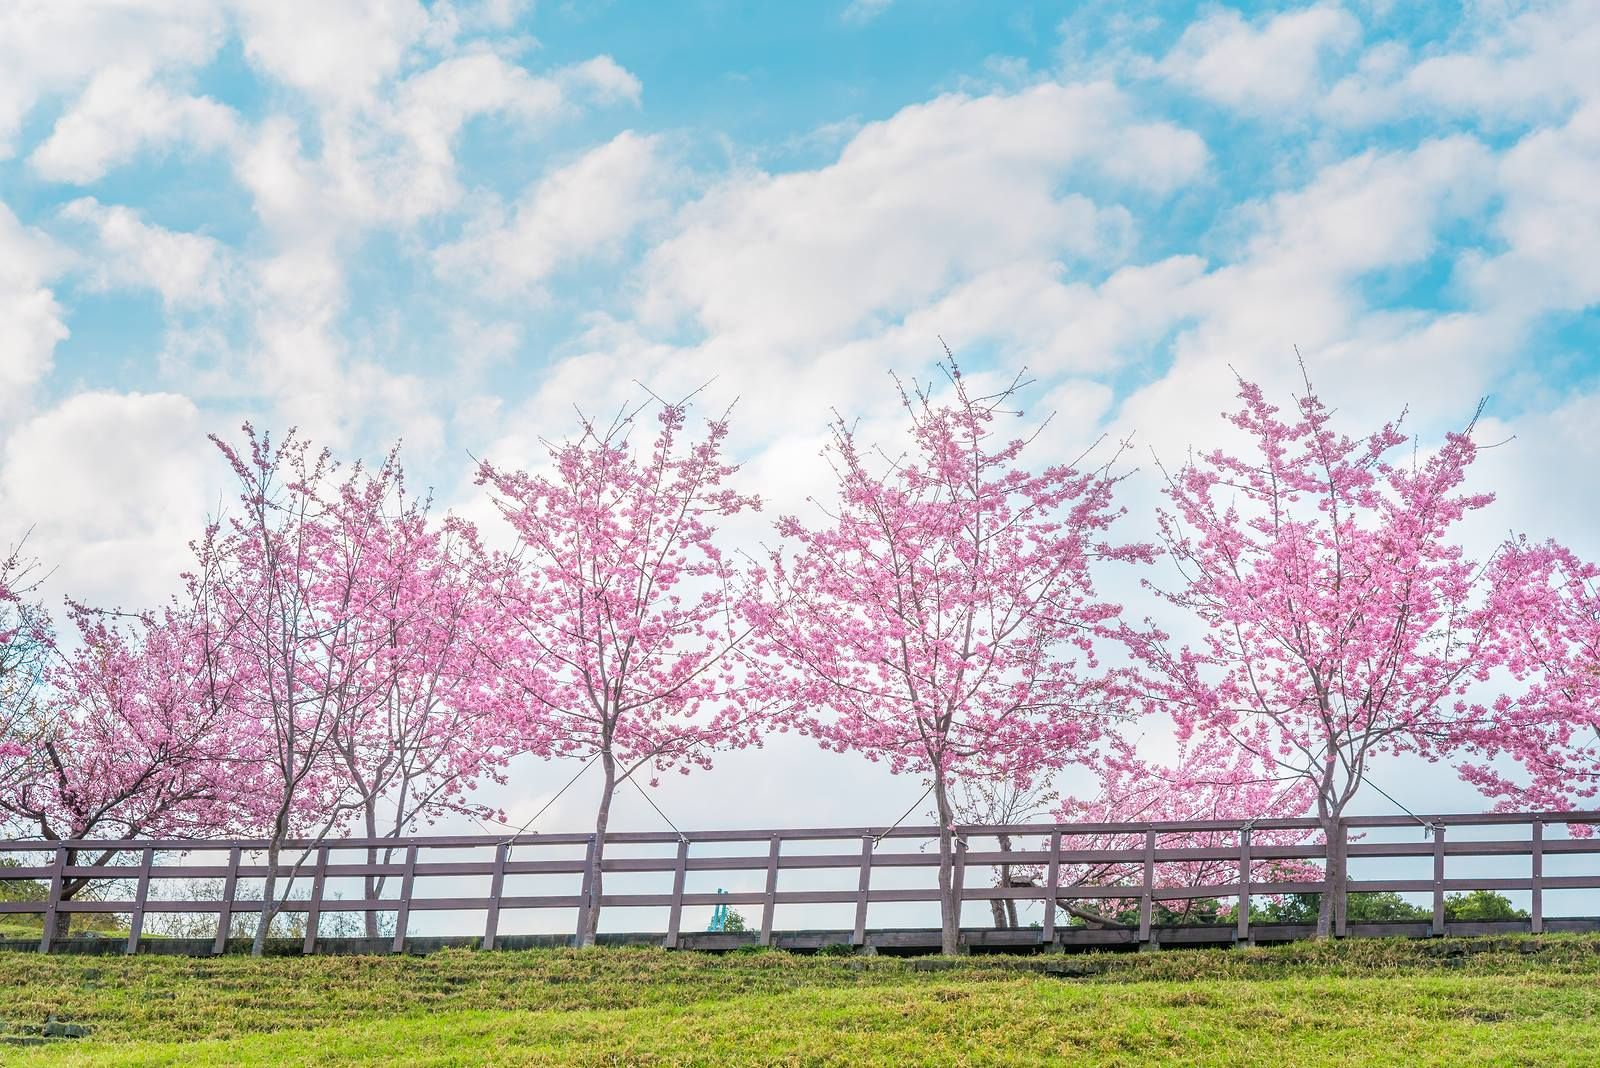 The Northern California Cherry Blossom Festival From April 14 22 Celebrates The Blooming Of Cherry Blossoms A Cherry Blossom Festival Bloom Northern California